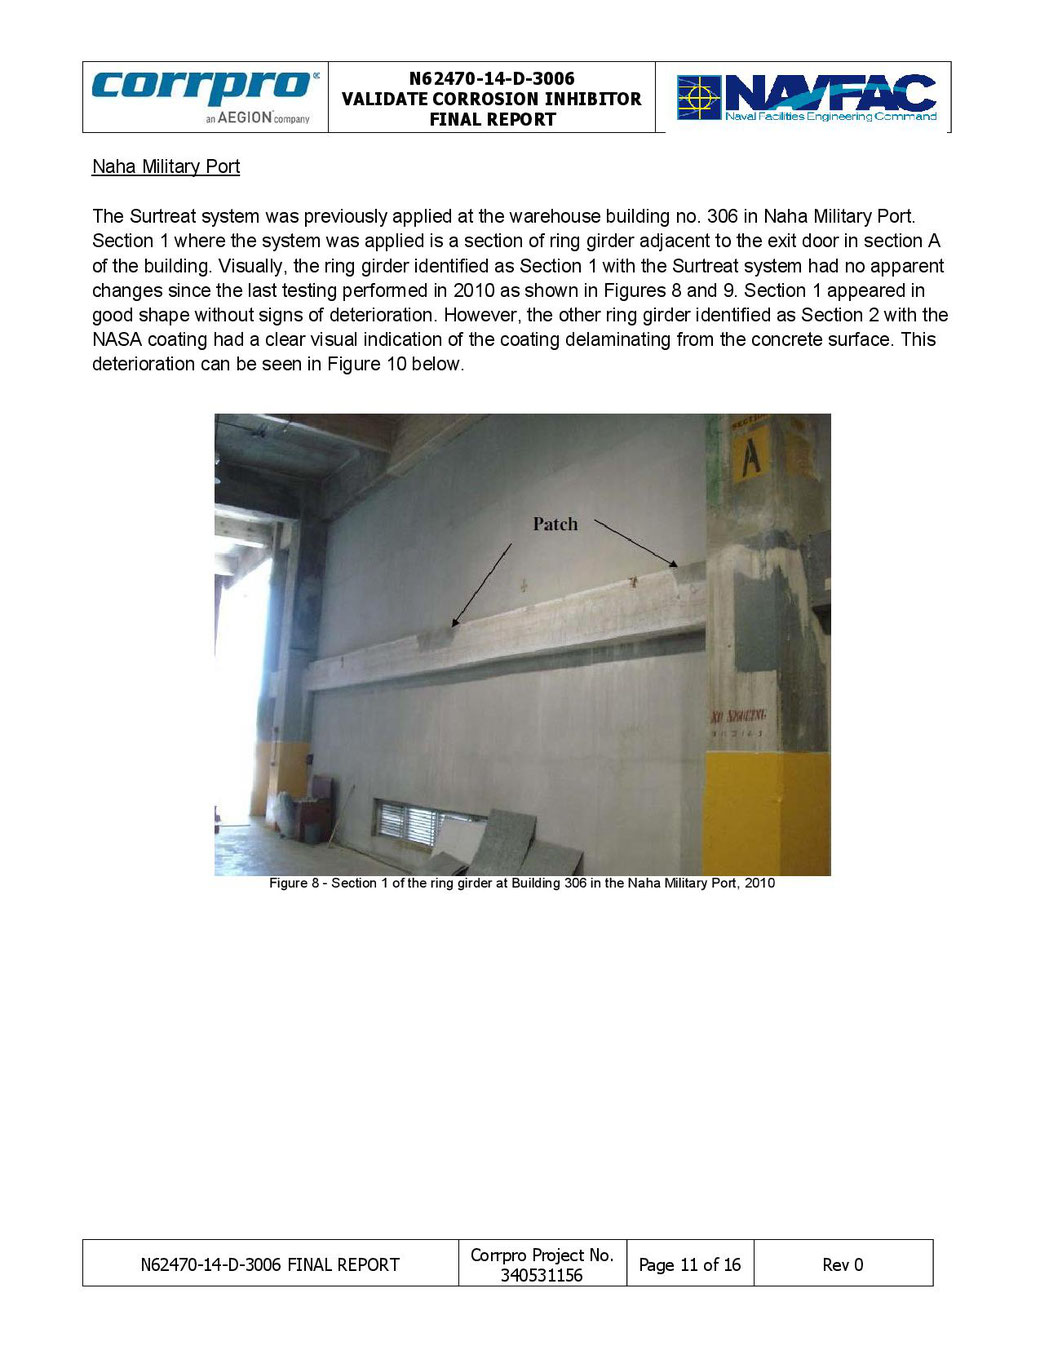 Galvanic NASA Coating used by Surtreat Holding, LLC to inhibit Corrosion on a Warehouse Beam.